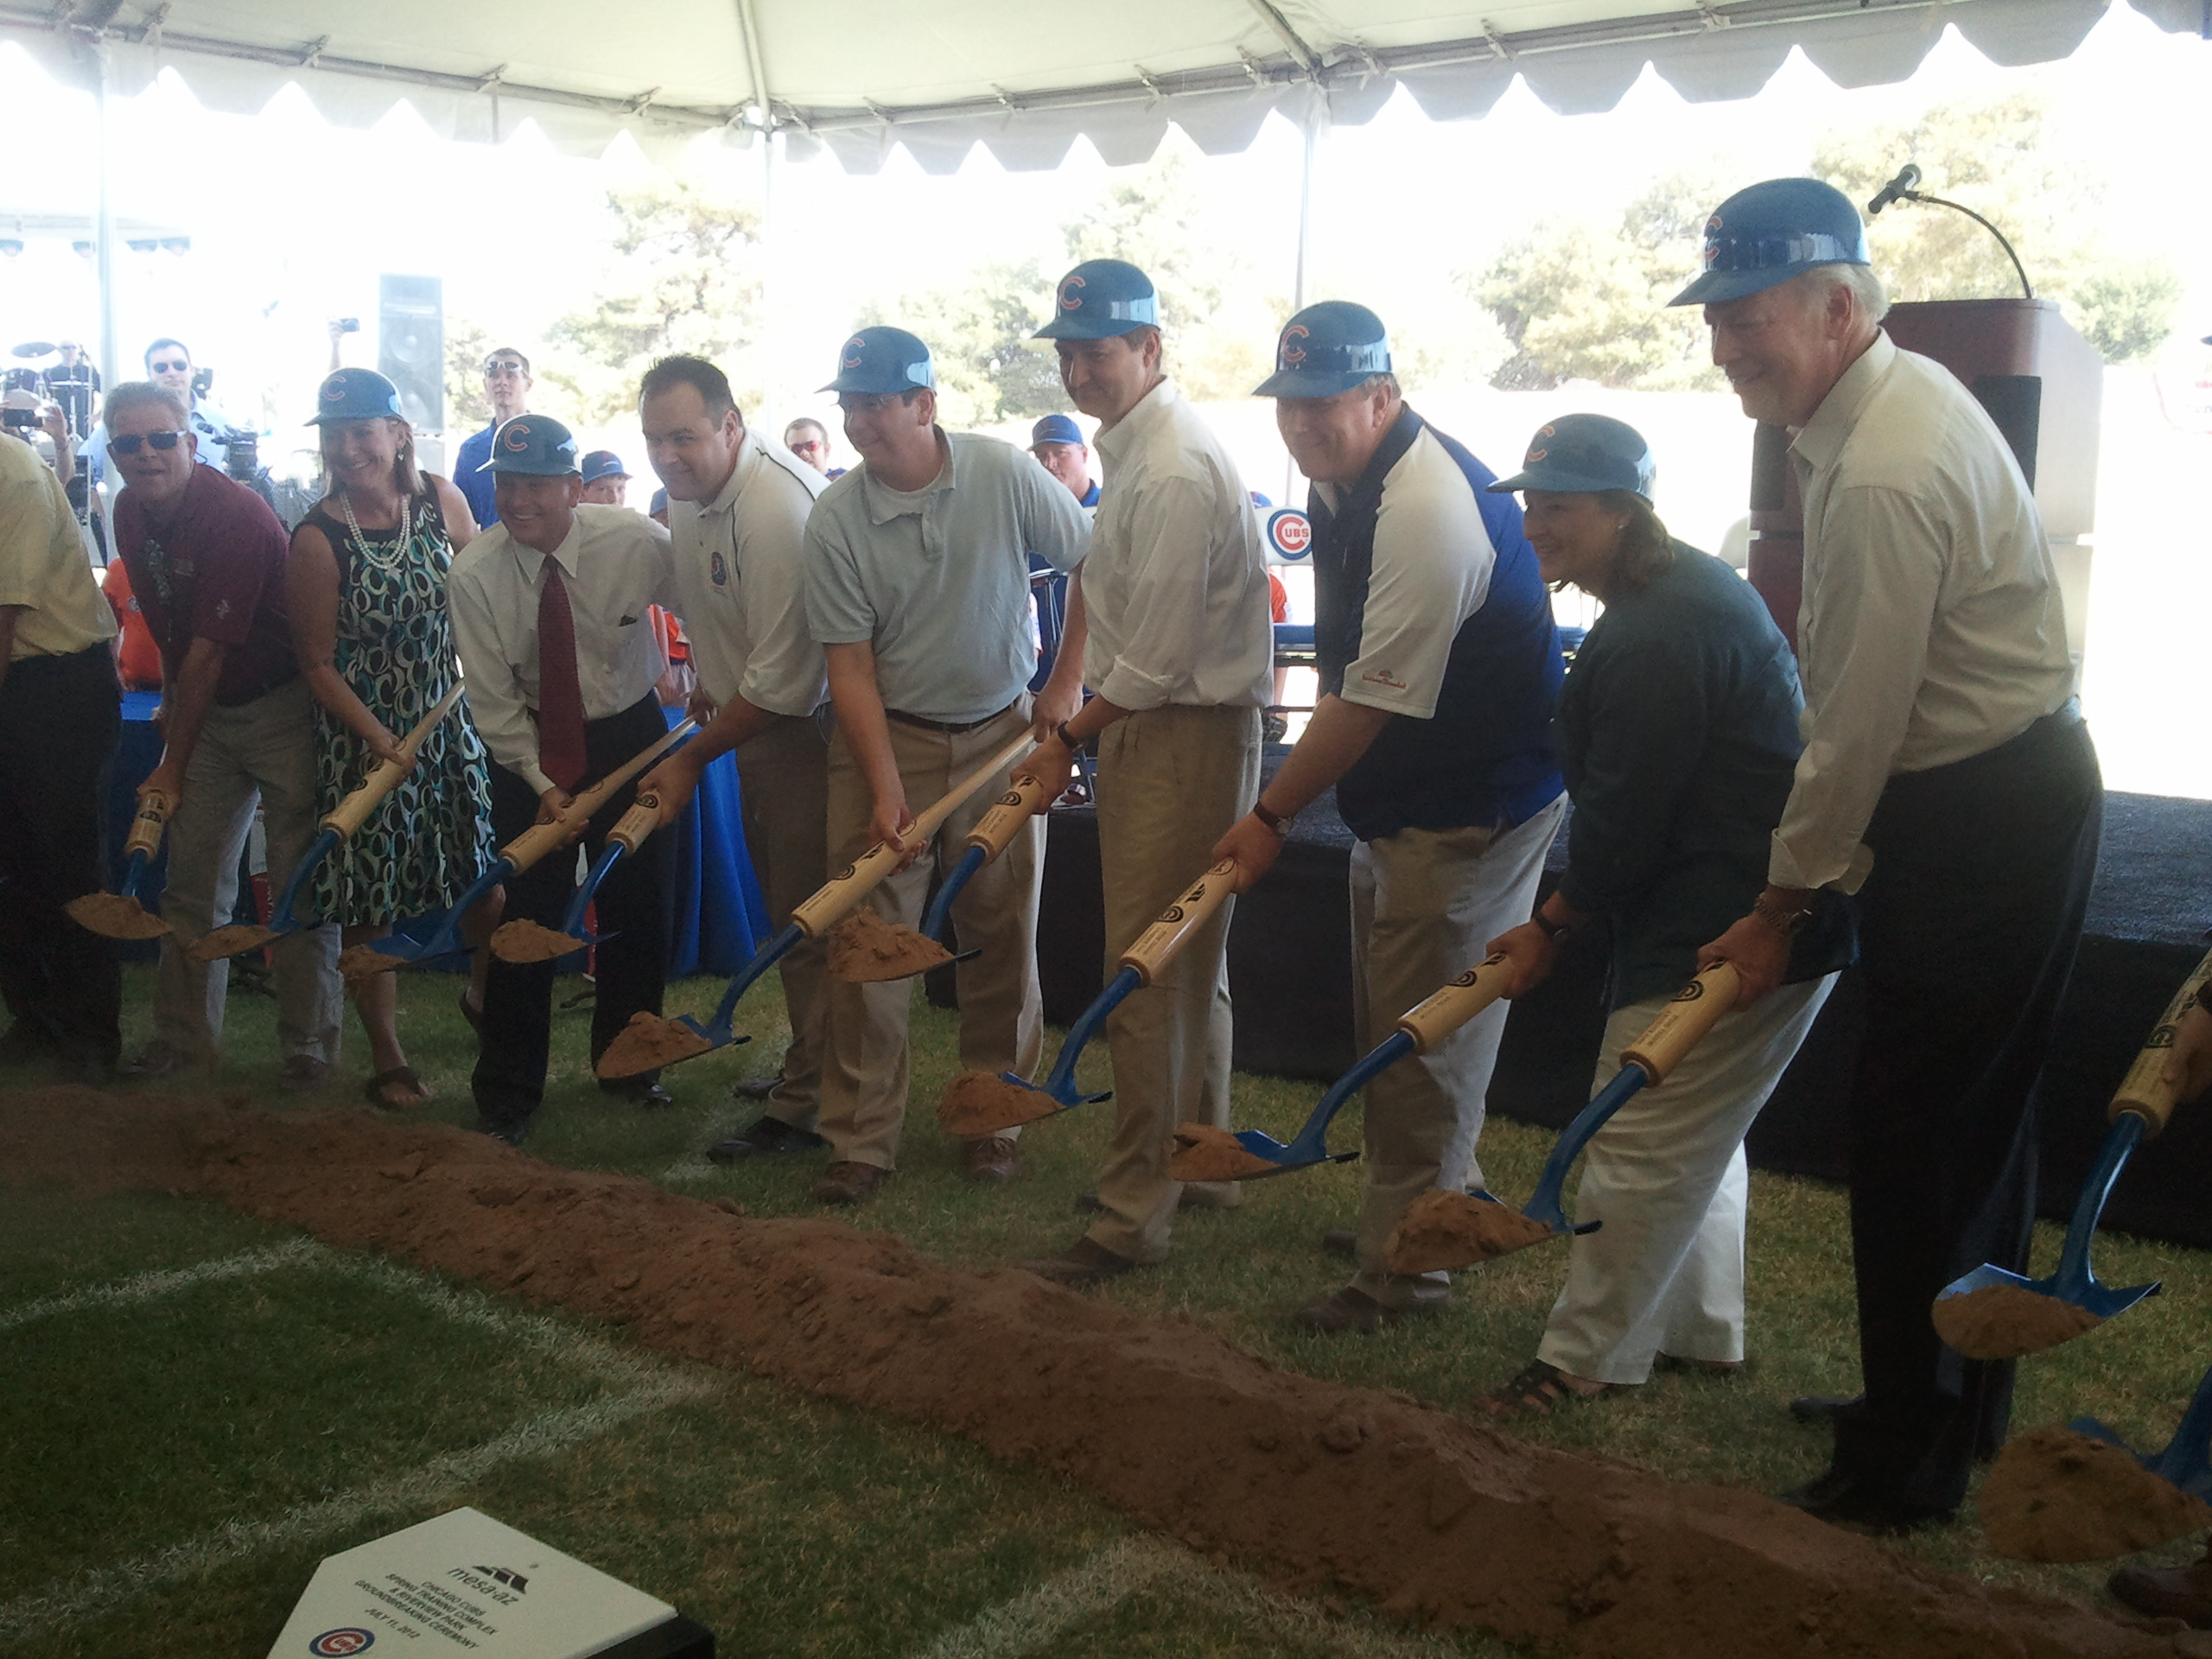 Chicago Cubs groundbreaking